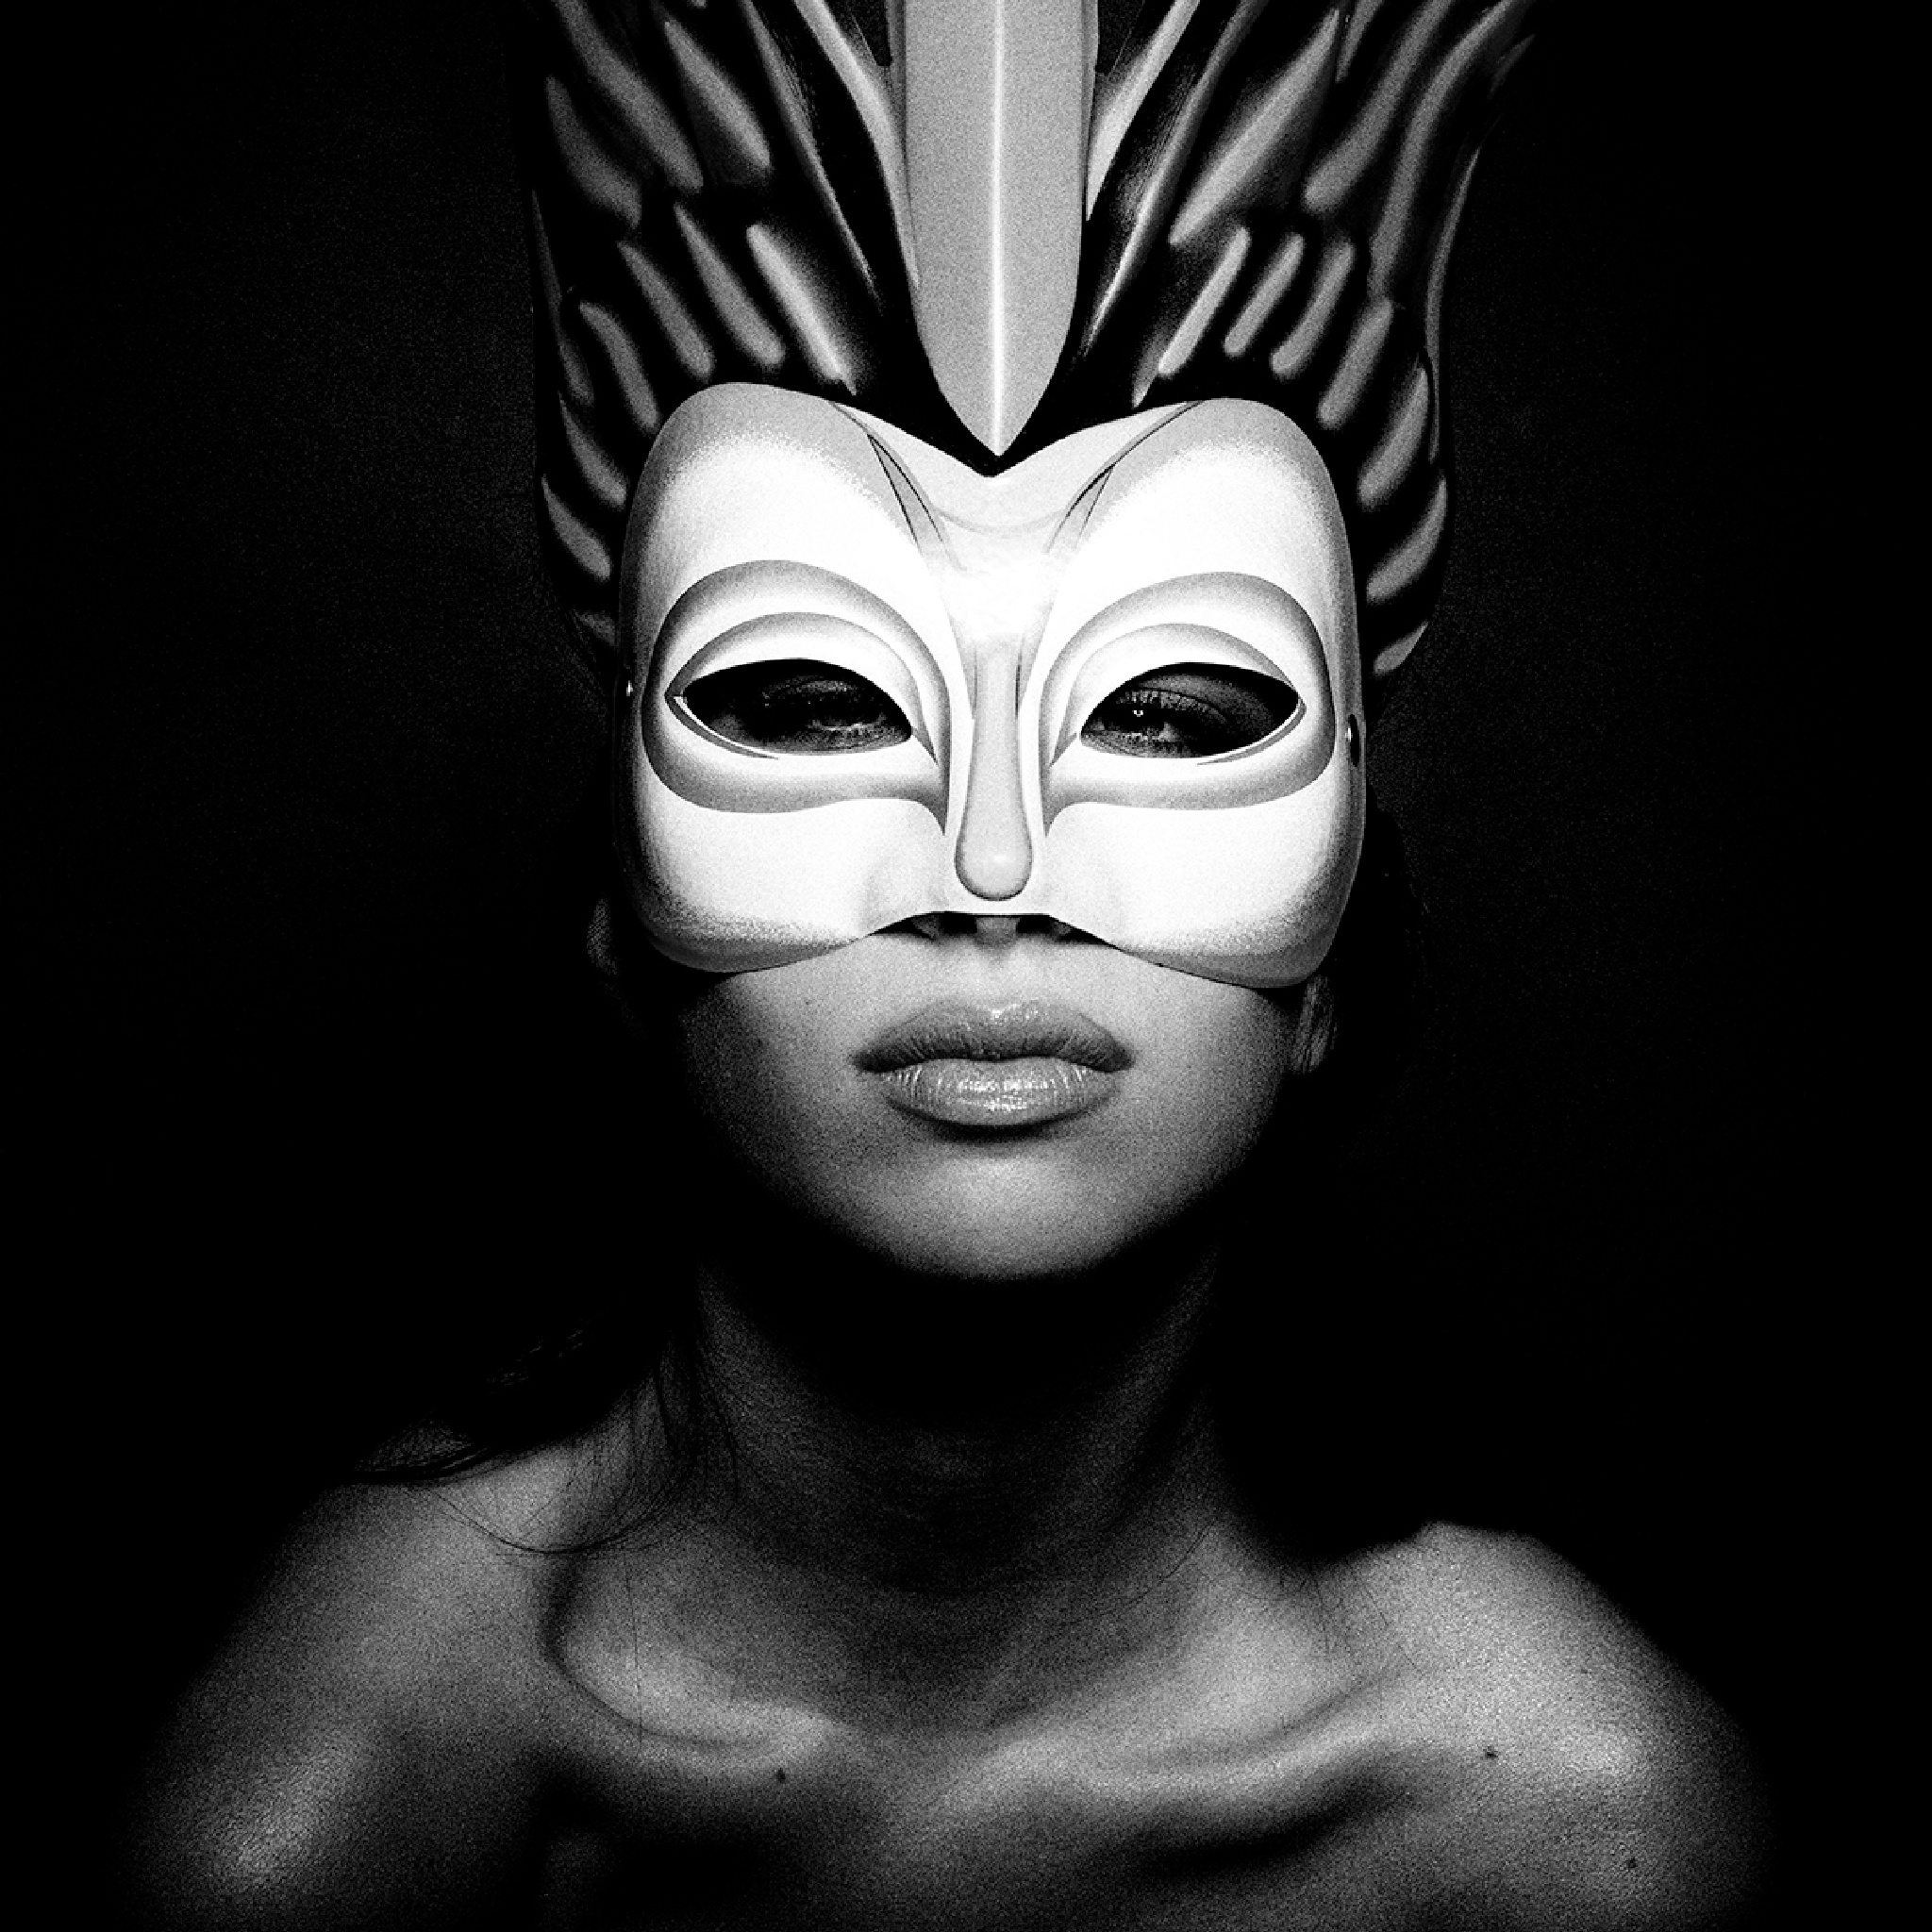 Mask by ilias